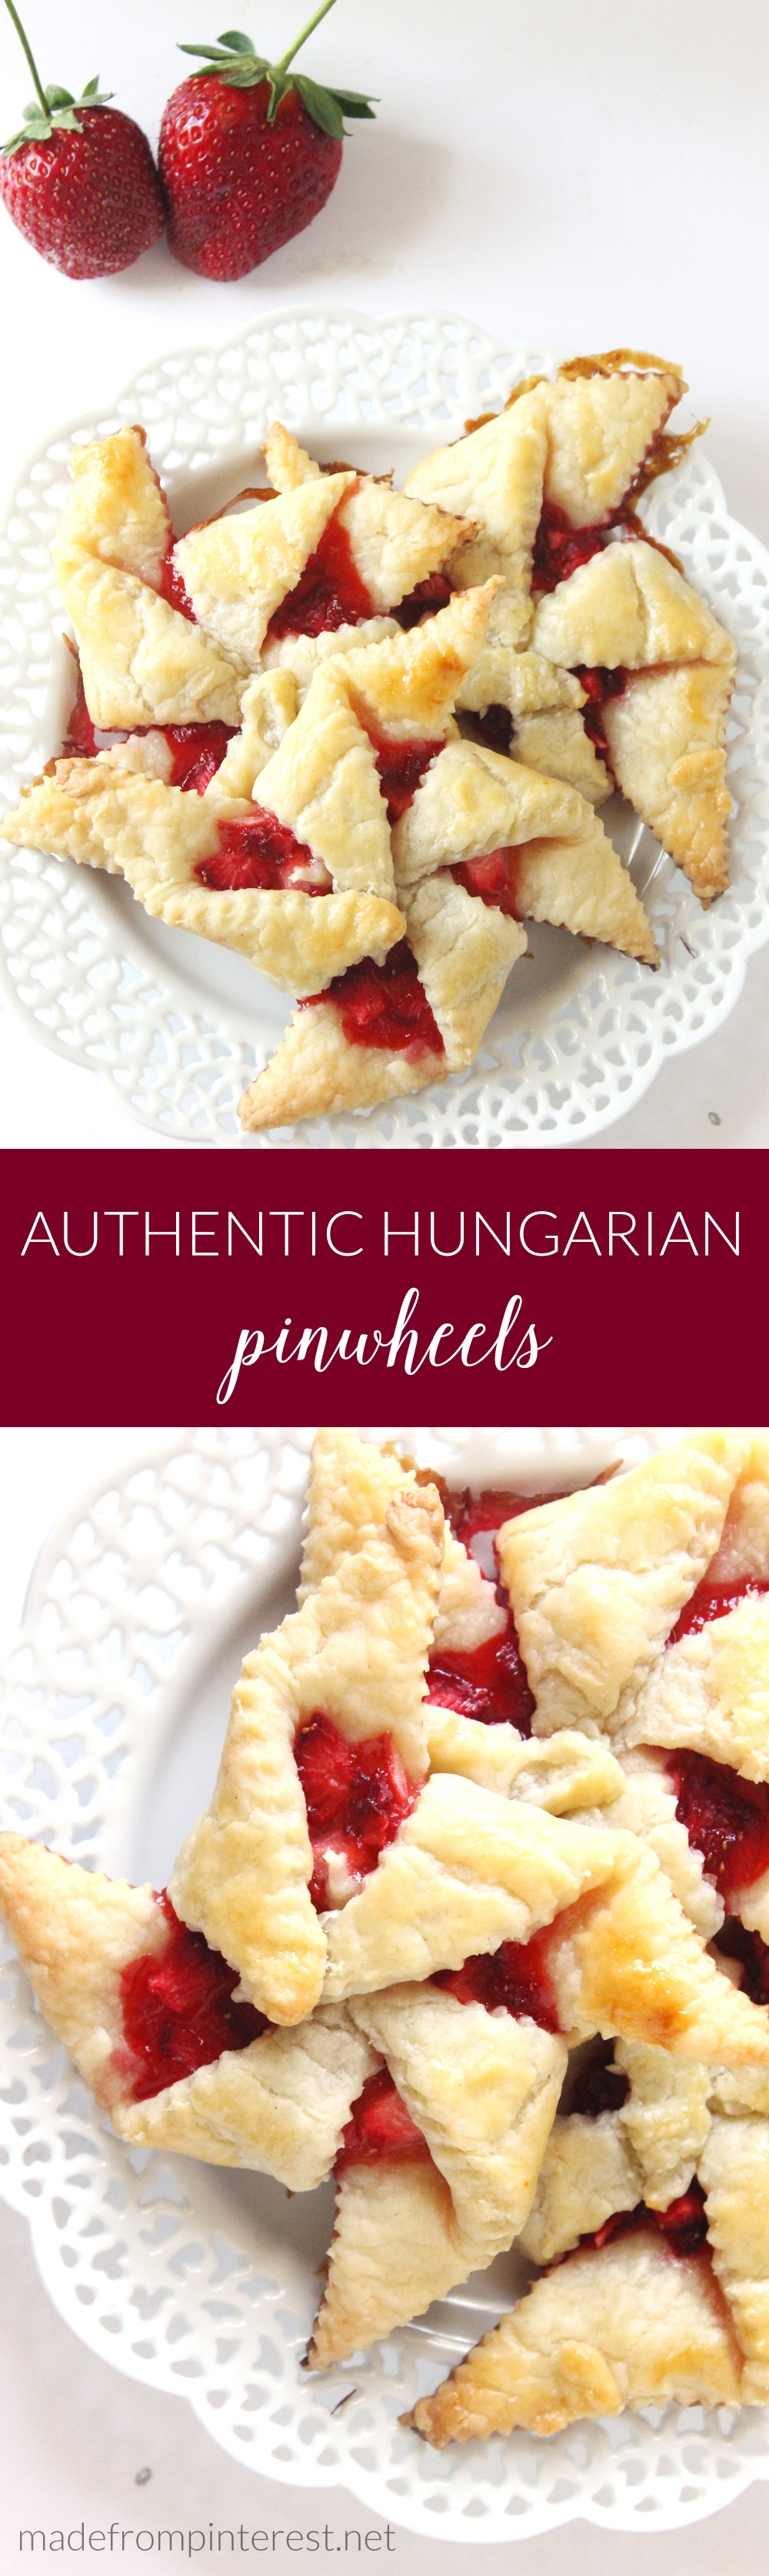 Learn how to make authentic Hungarian pinwheels! Using just 6 ingredients, these easy-to-make pinwheels are sure to become a family favorite in no time!